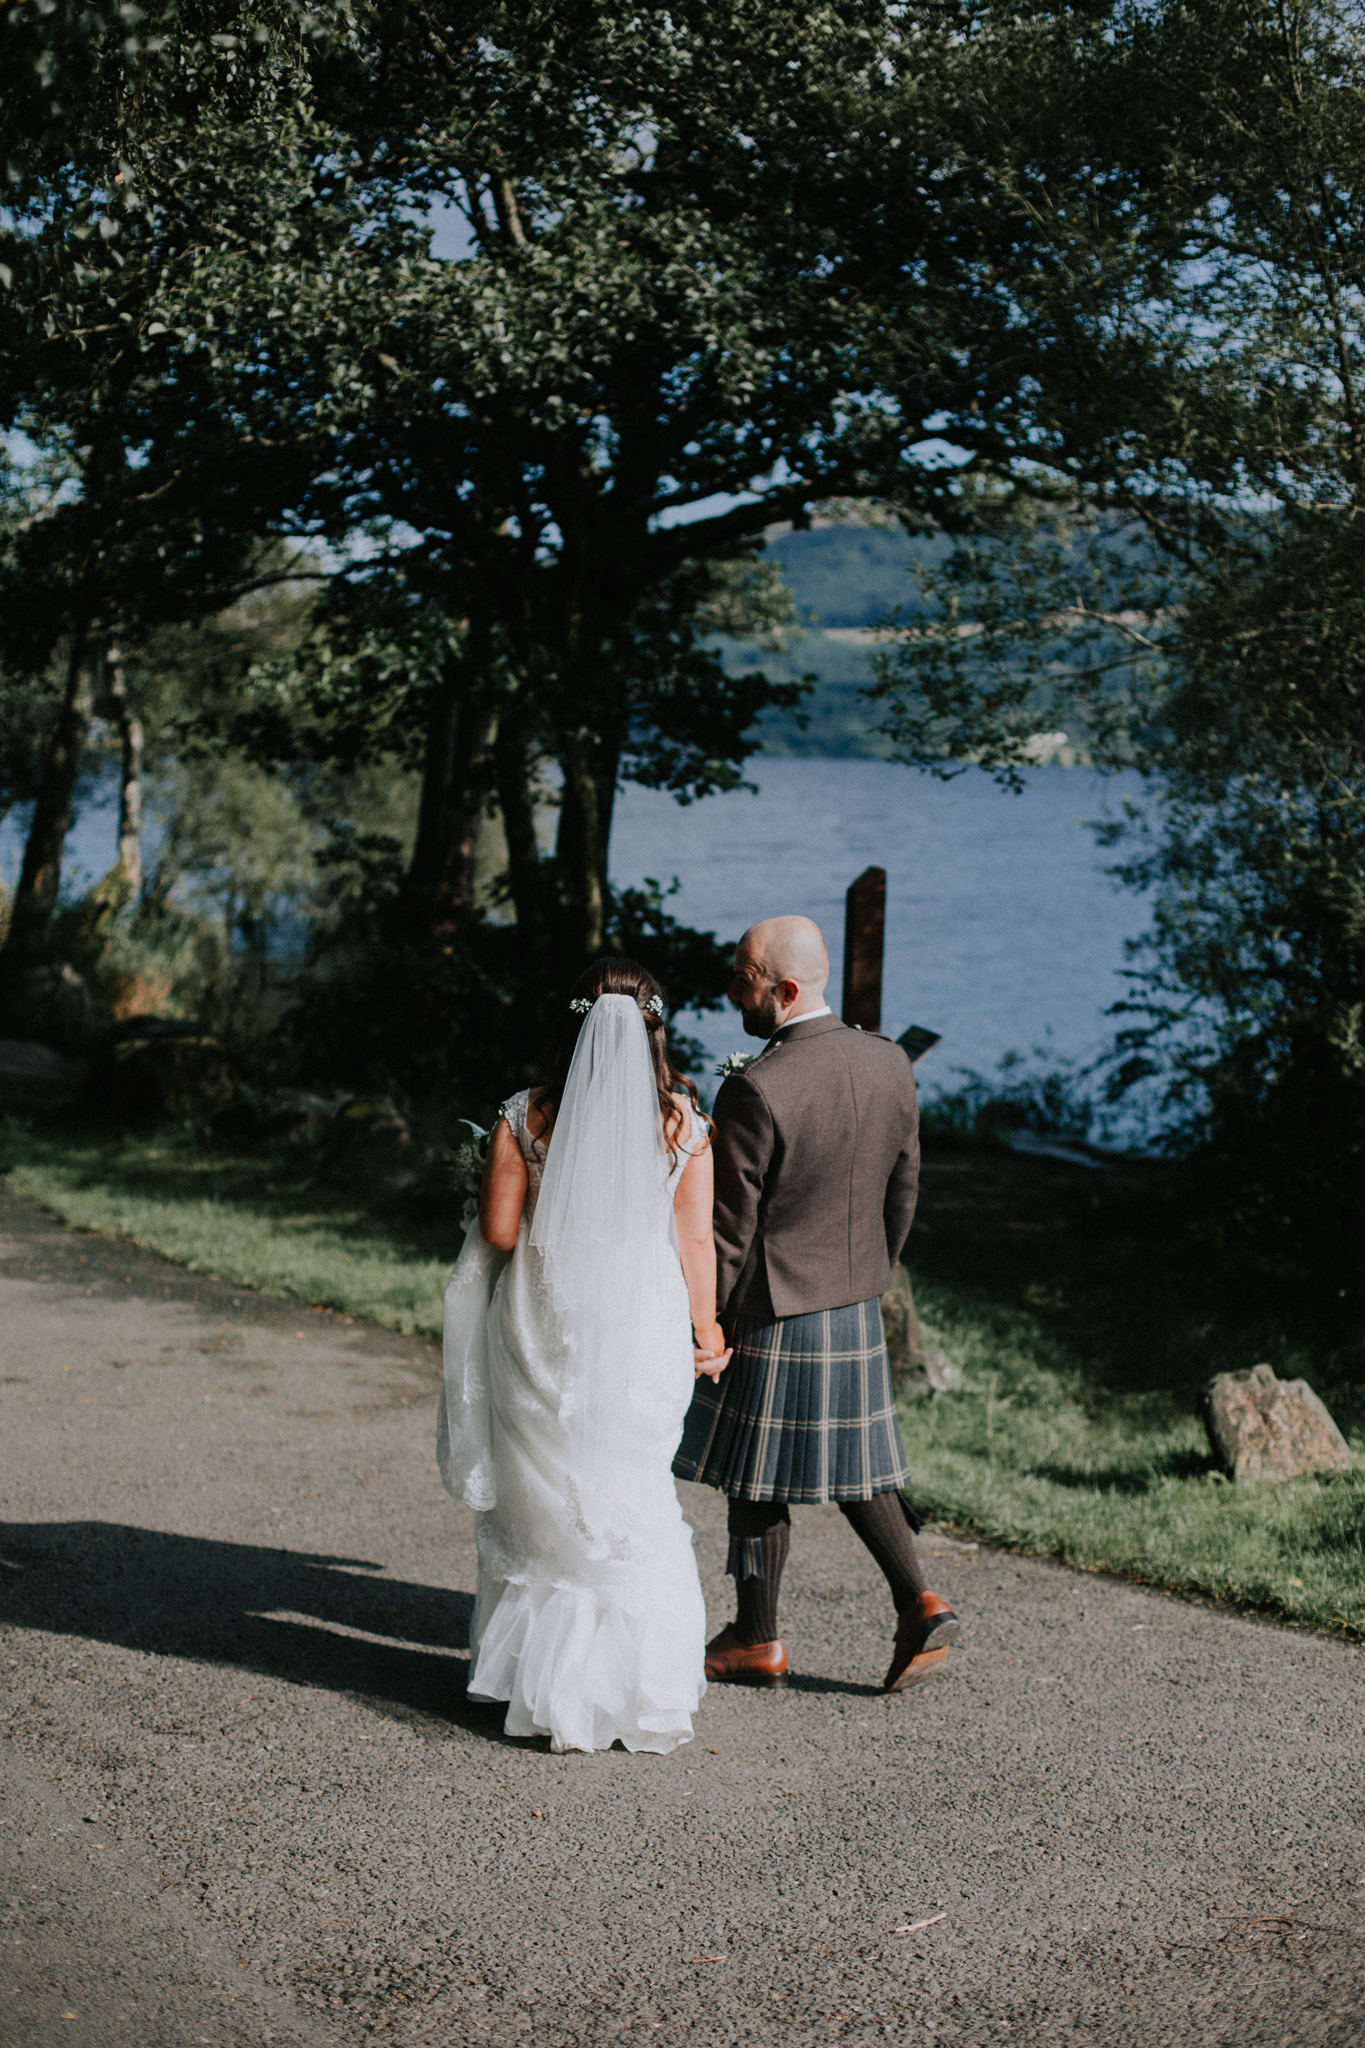 The couple is walking down to the loch for the photo shoot